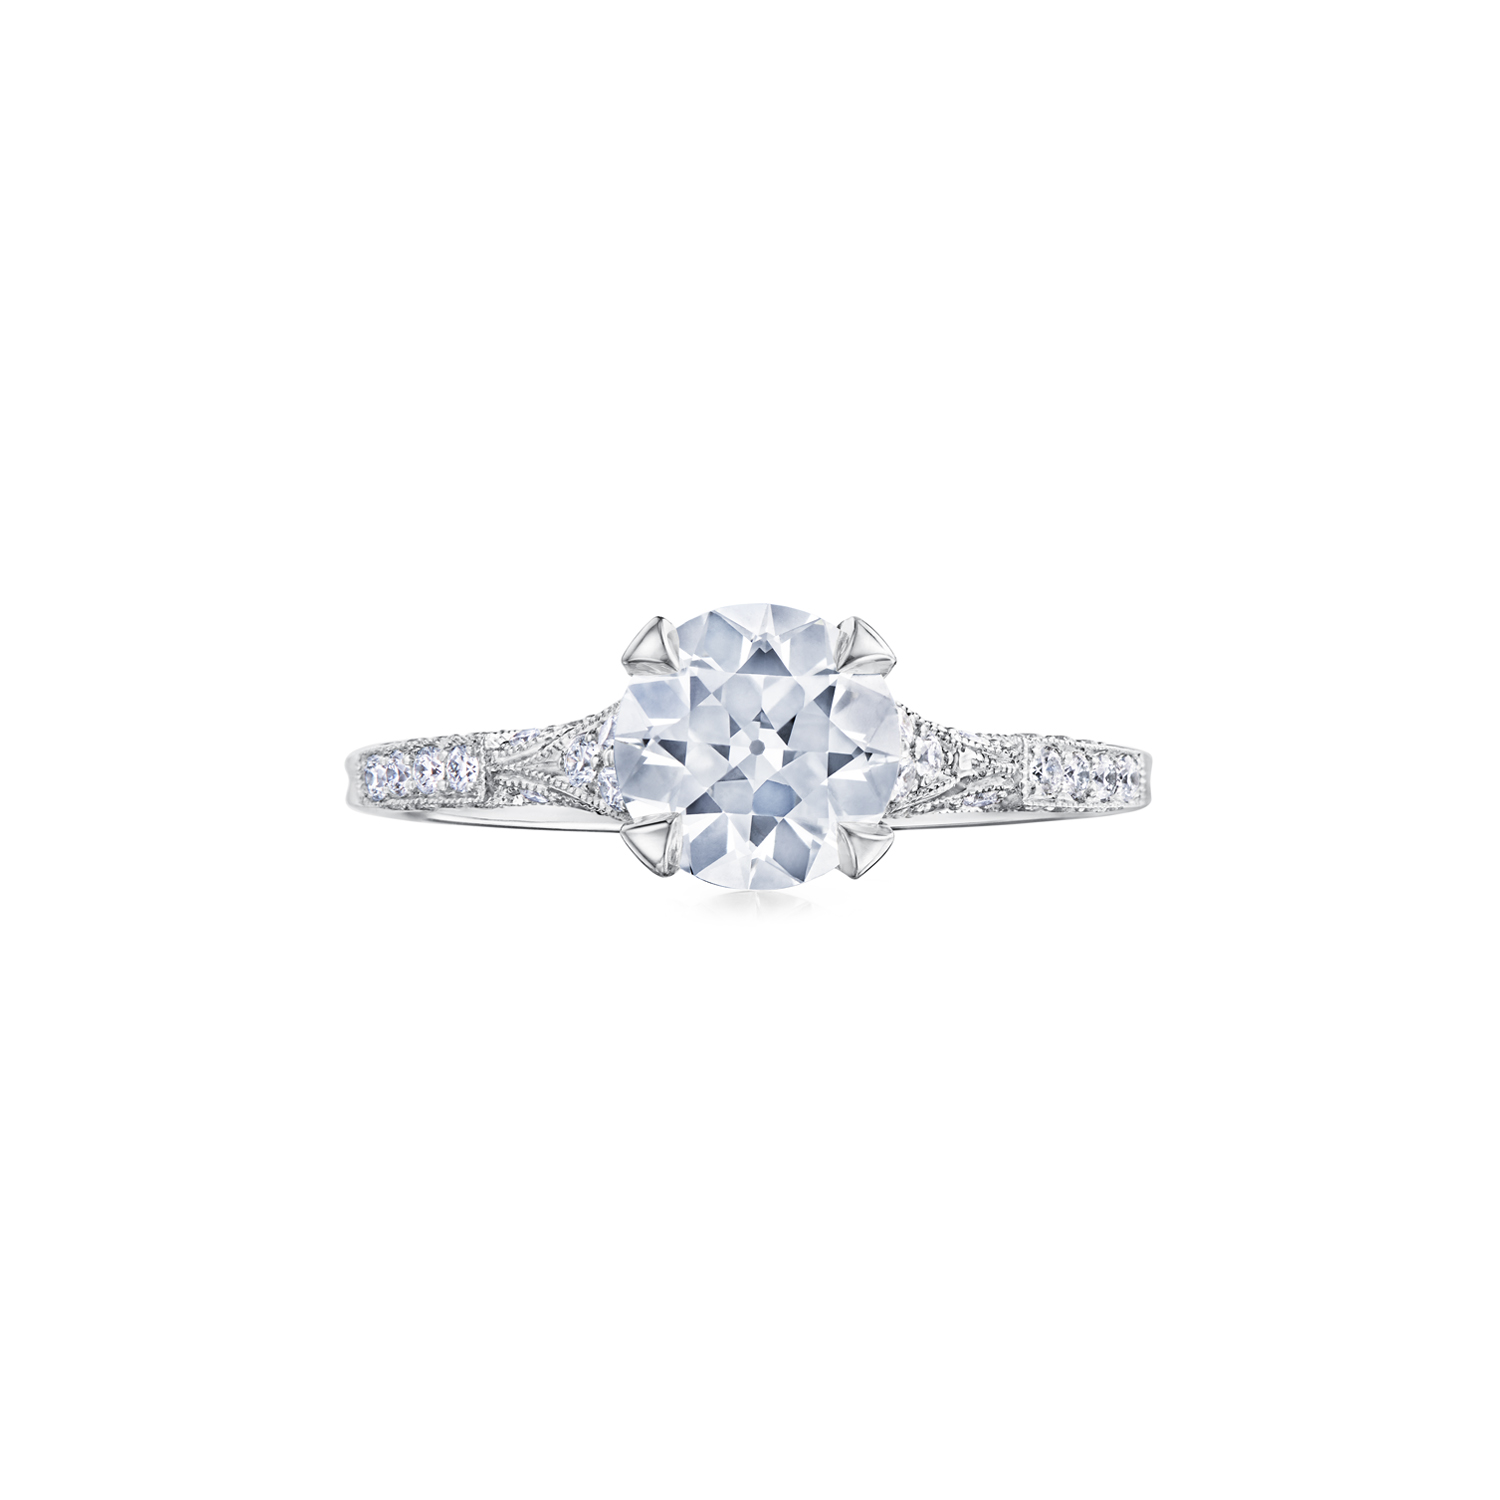 Fred Leighton Round Diamond Platinum Ring Signed Fred Leighton Style F-1056FL-0-DIA-PLAT